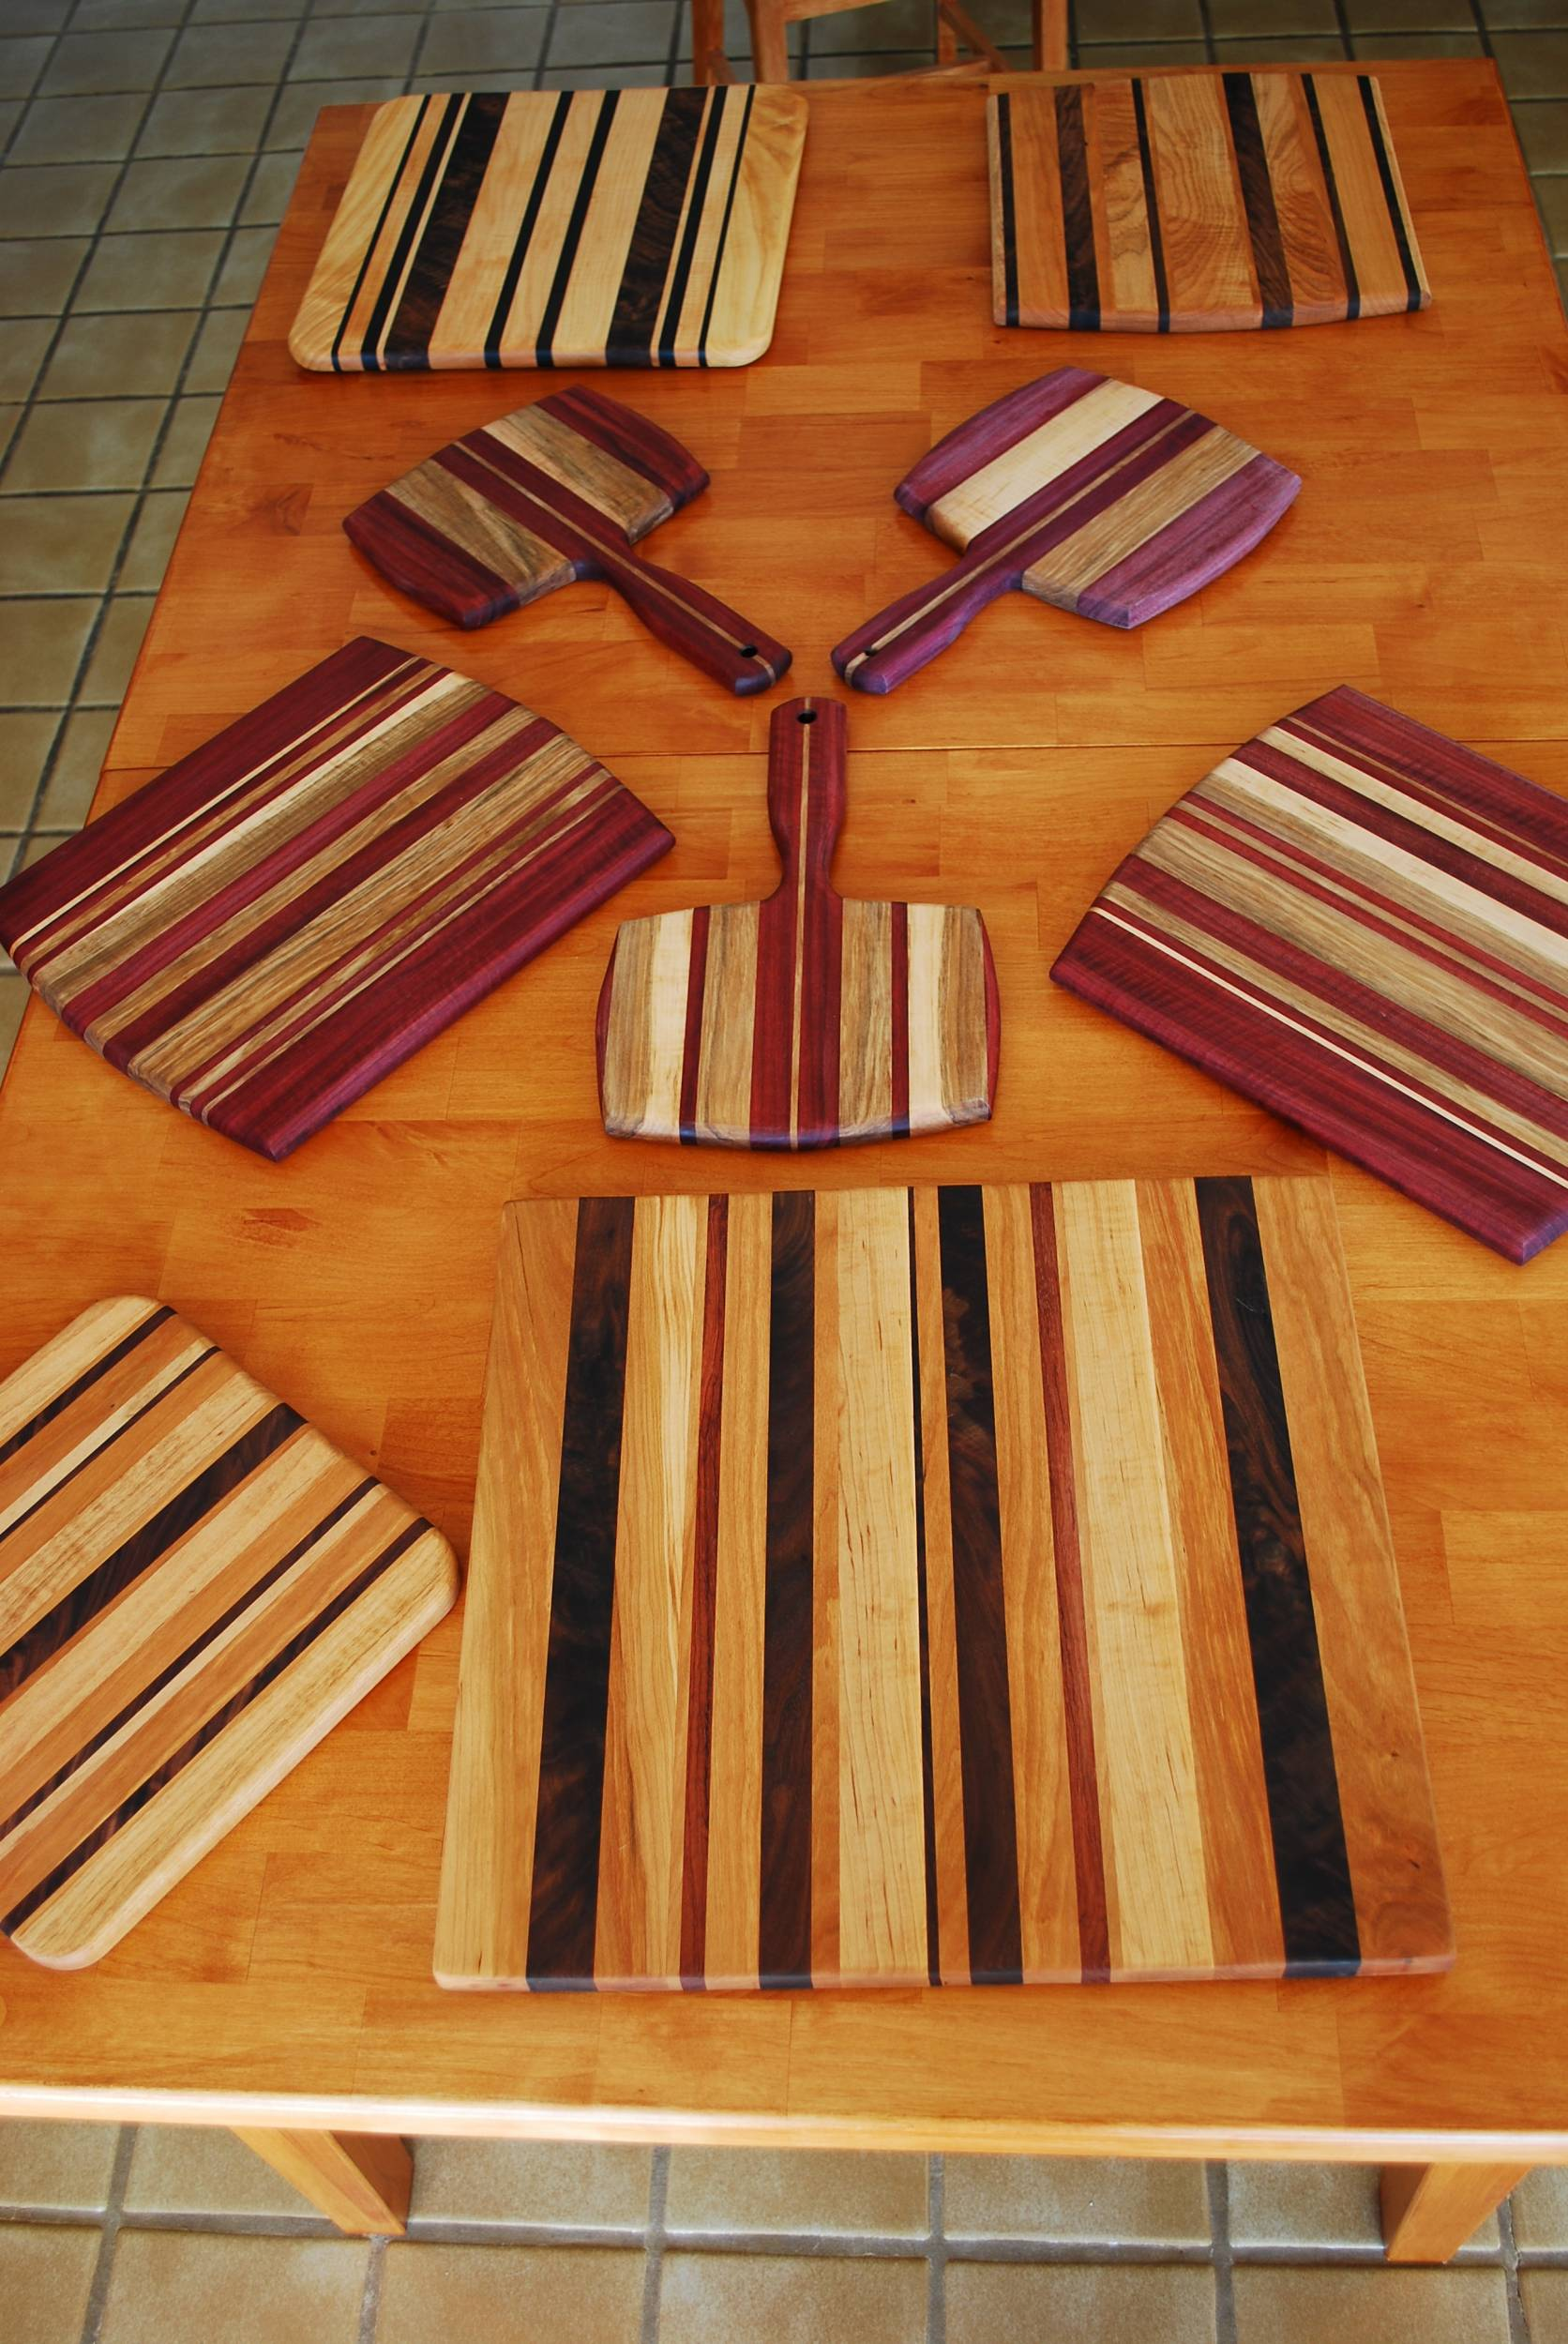 Hardwood Cutting Boards ~ Making cutting boards with exotic tropical woods